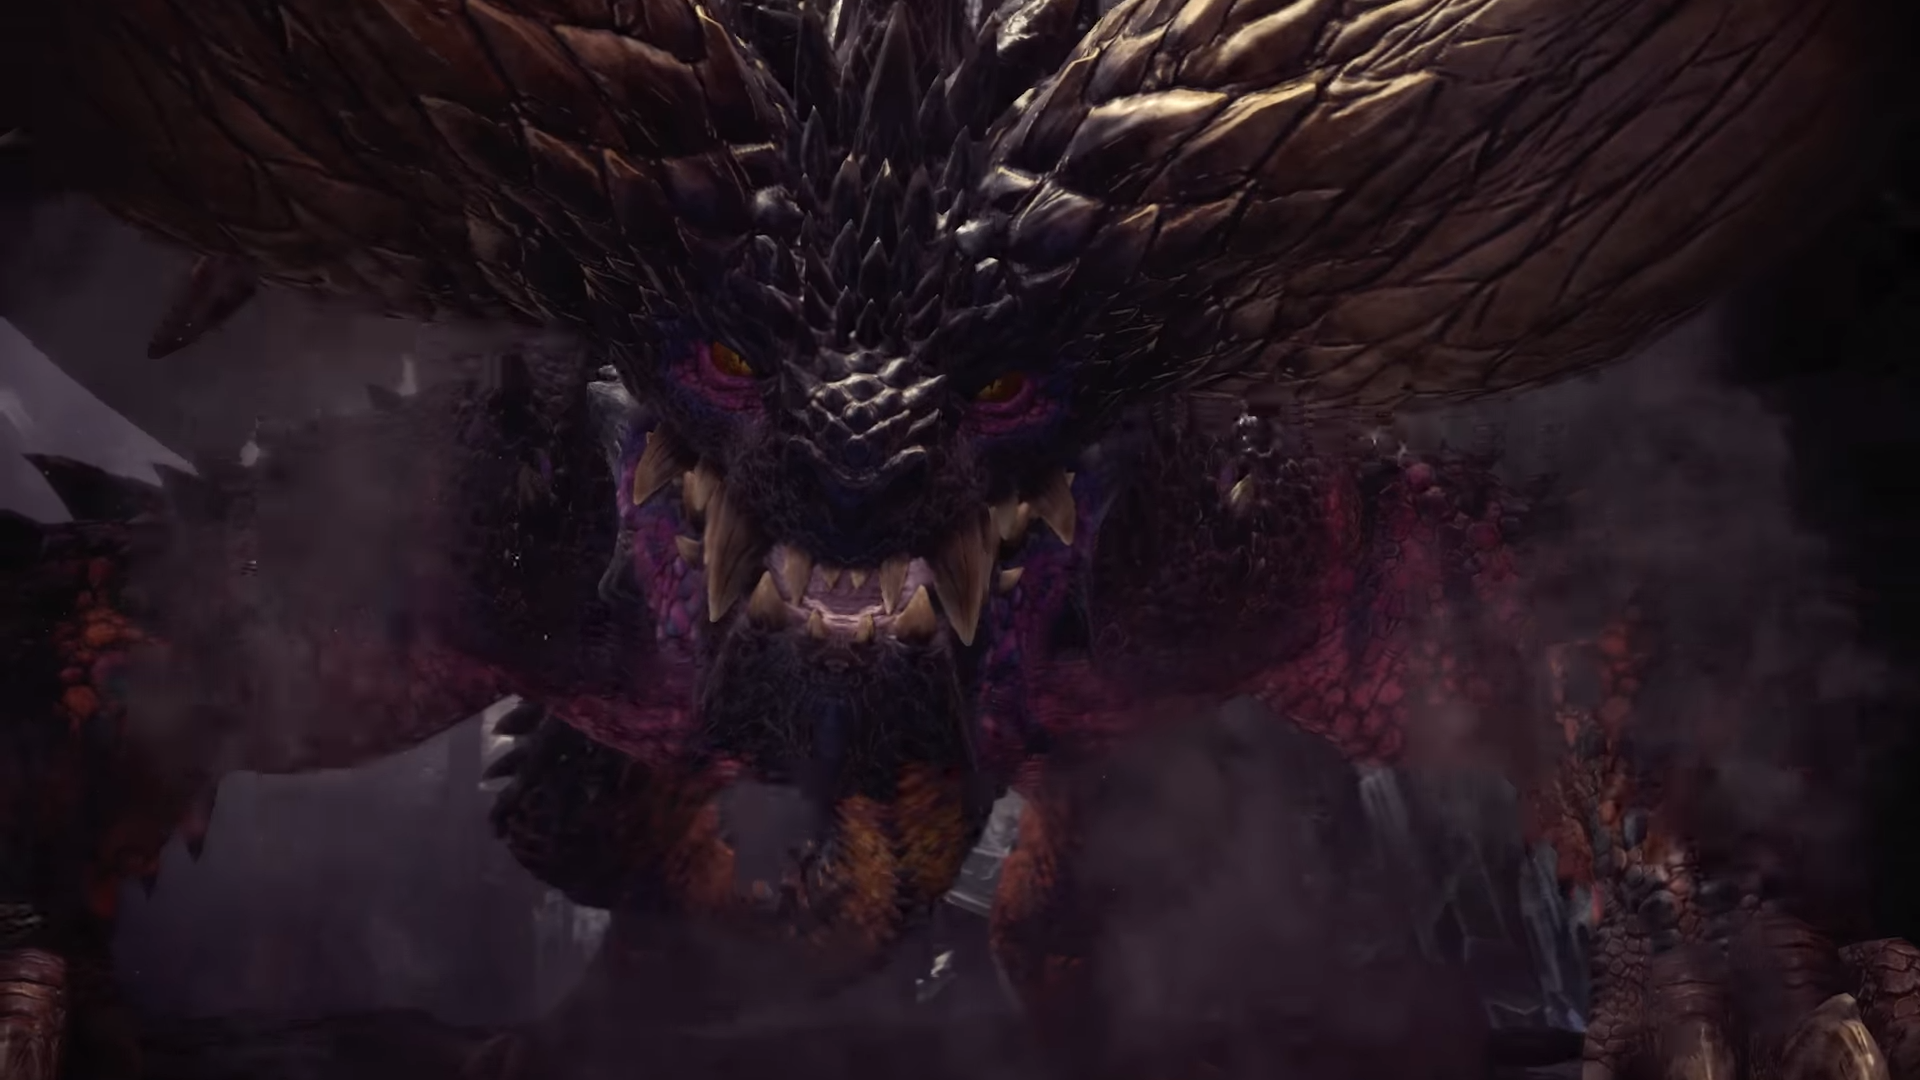 Nergigante Wallpapers Top Free Nergigante Backgrounds